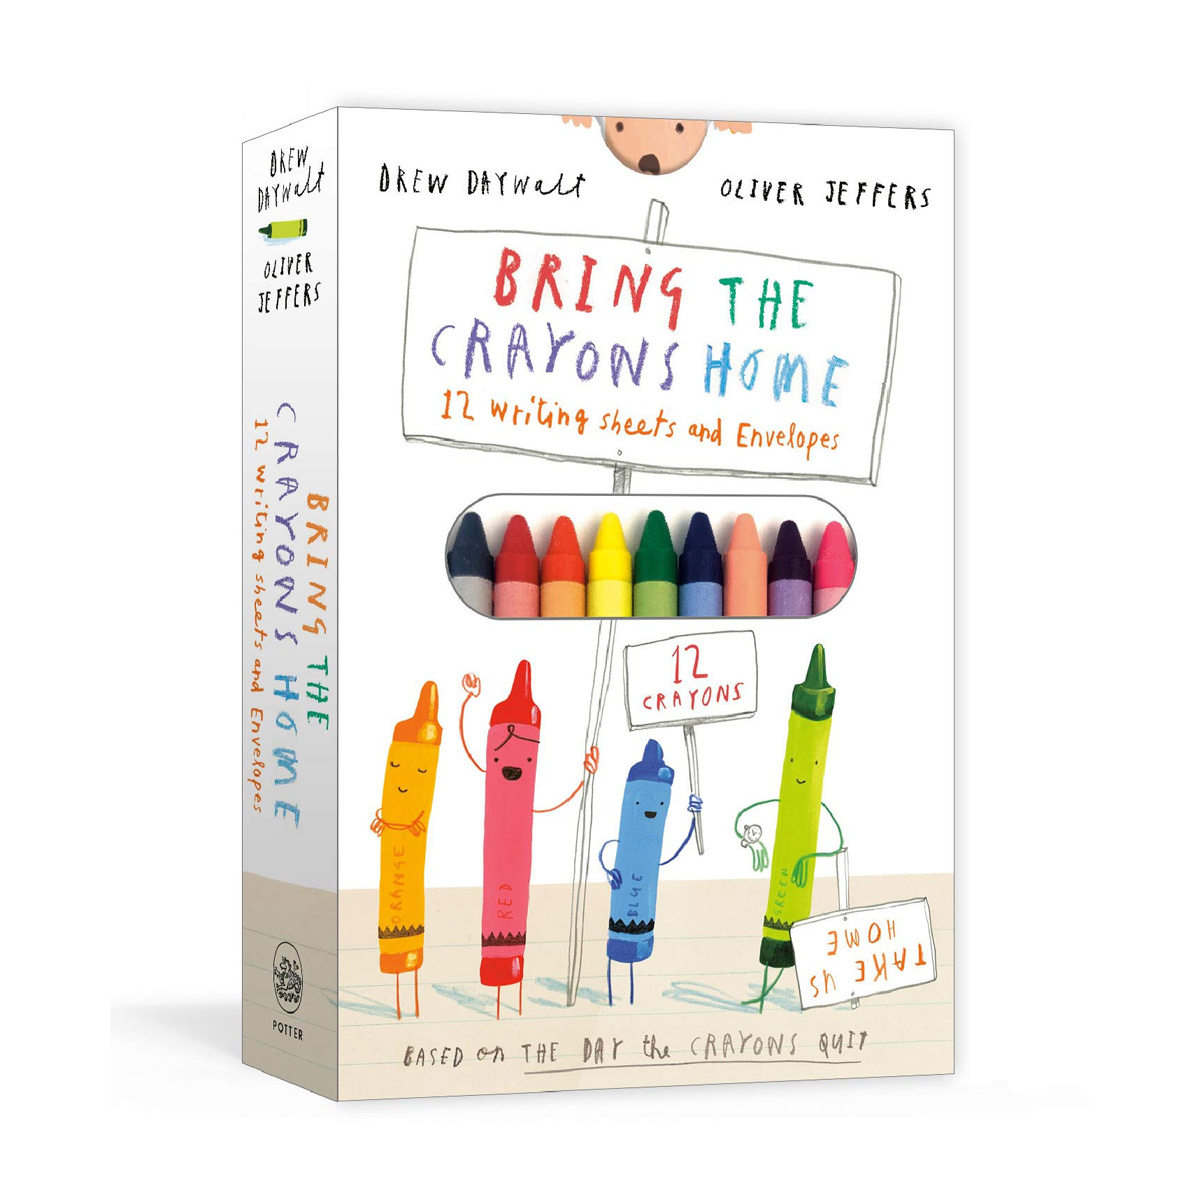 Penguin Random House - PRH Bring the Crayons Home Writing Sheets & Envelopes